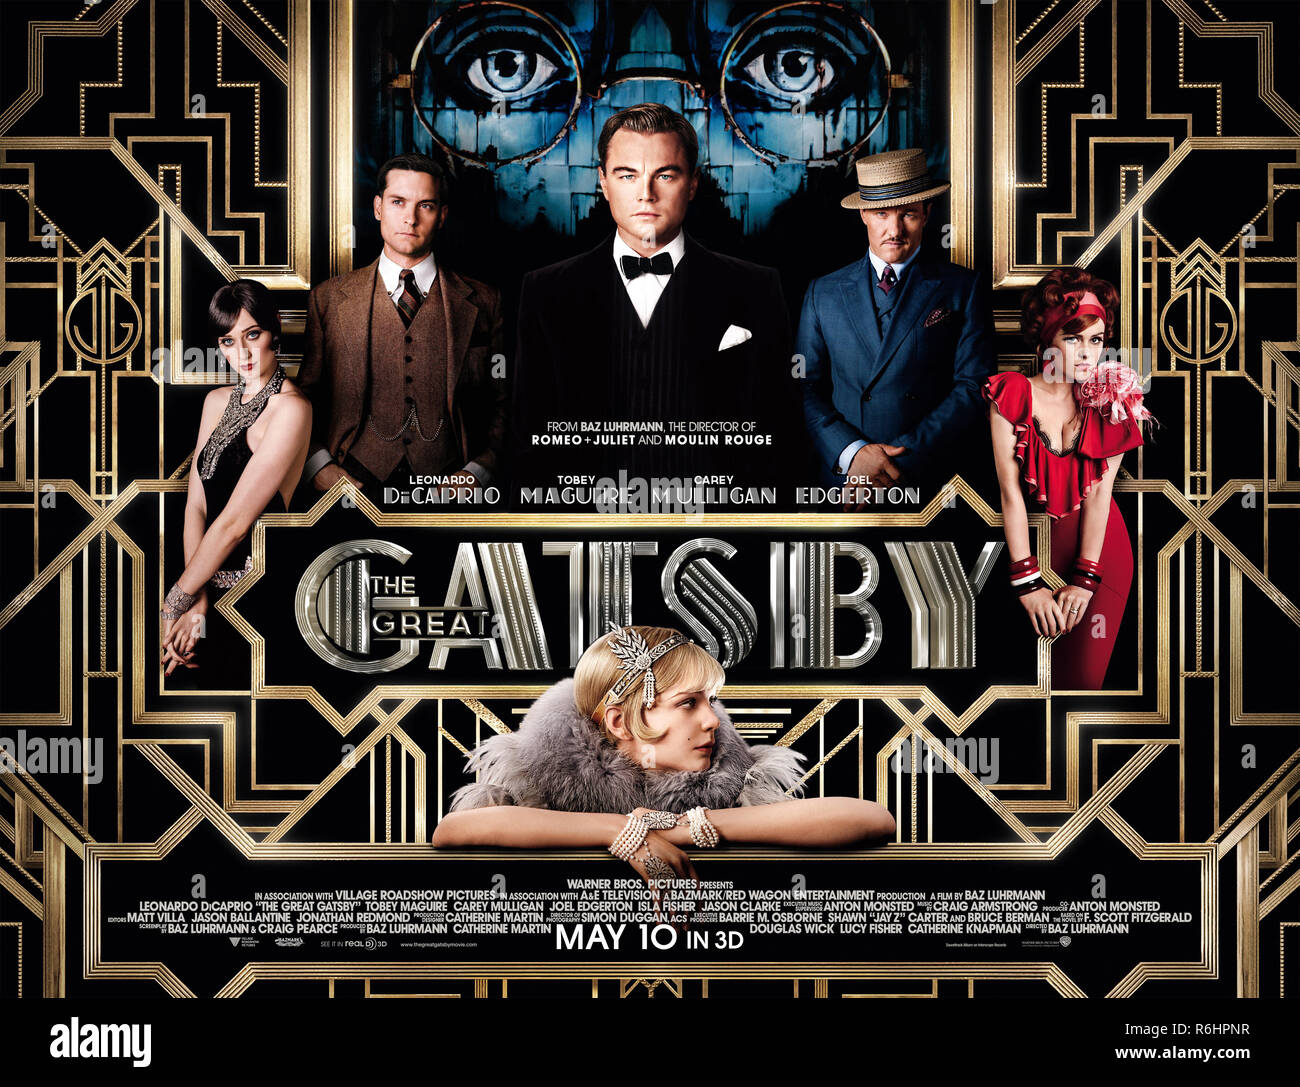 the great gatsby storyline